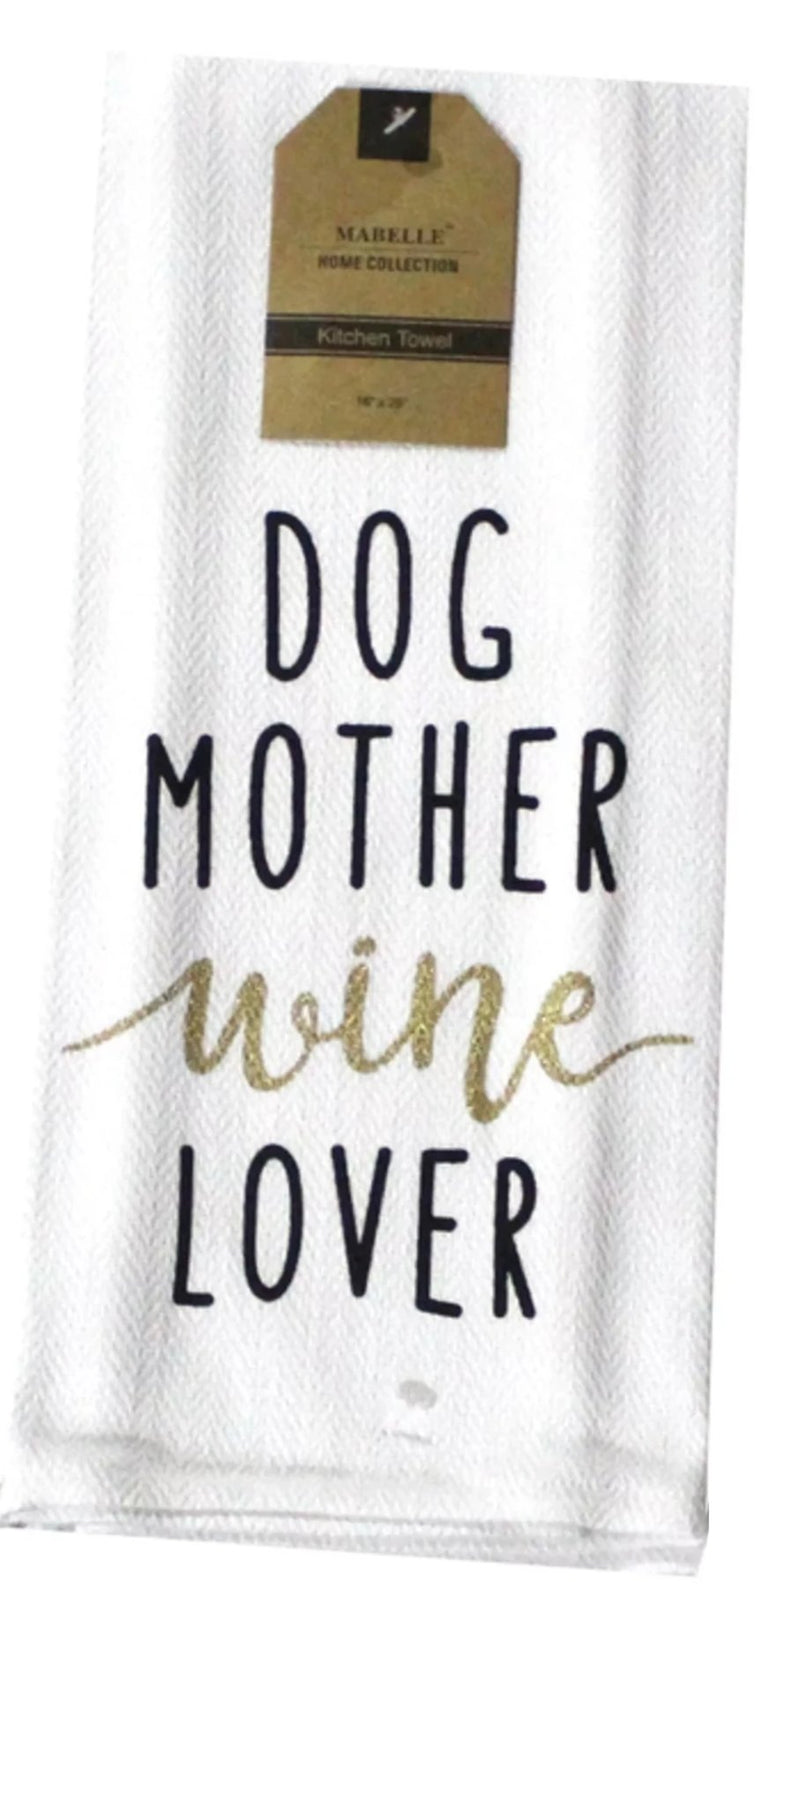 Dog Mother Wine Lover Dish Towel Dish Towel